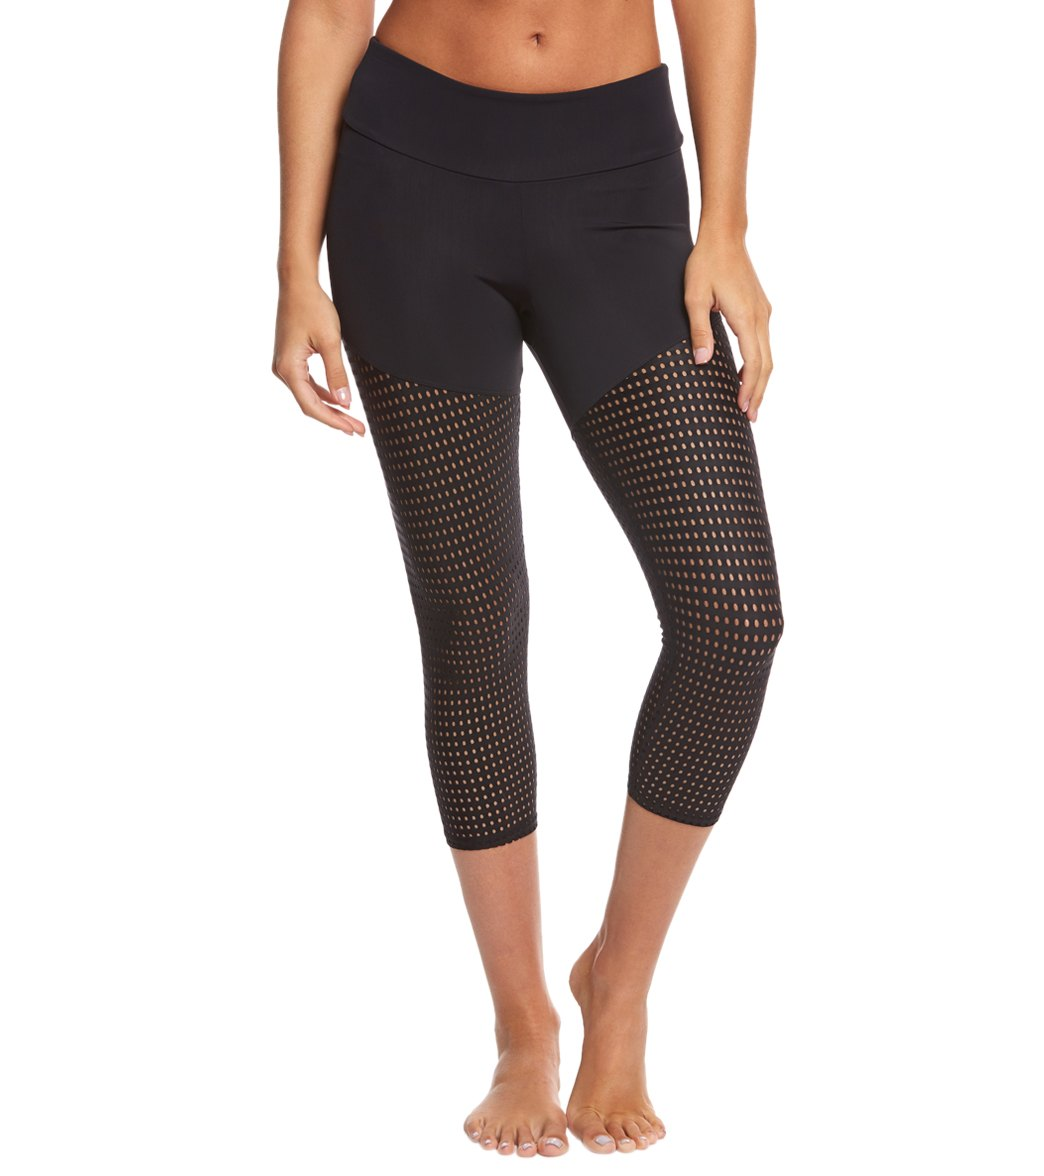 Onzie Half/Half Yoga Capris at YogaOutlet.com - Free Shipping